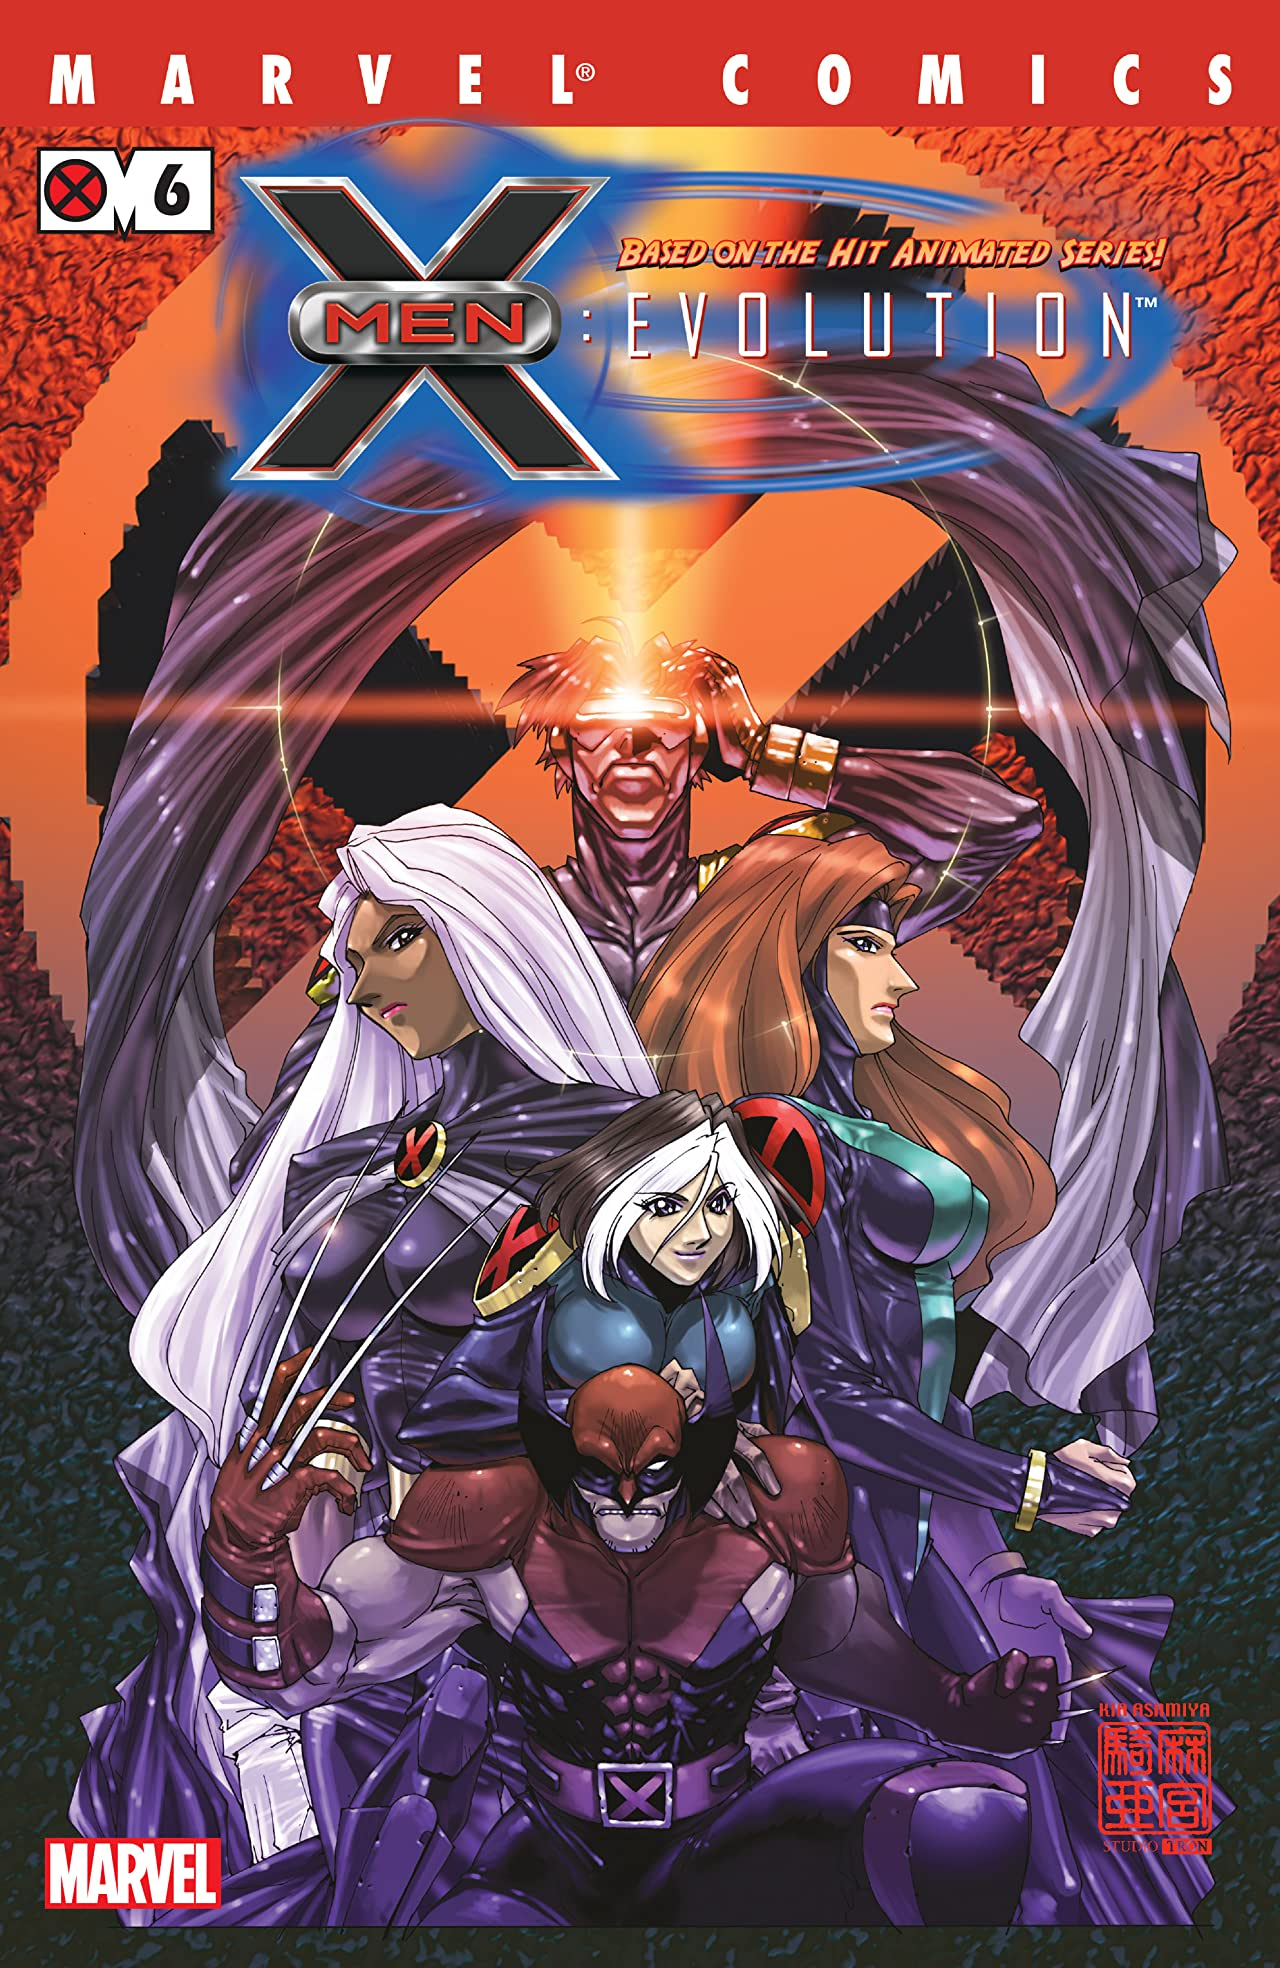 X-Men Evolution (2002) #6